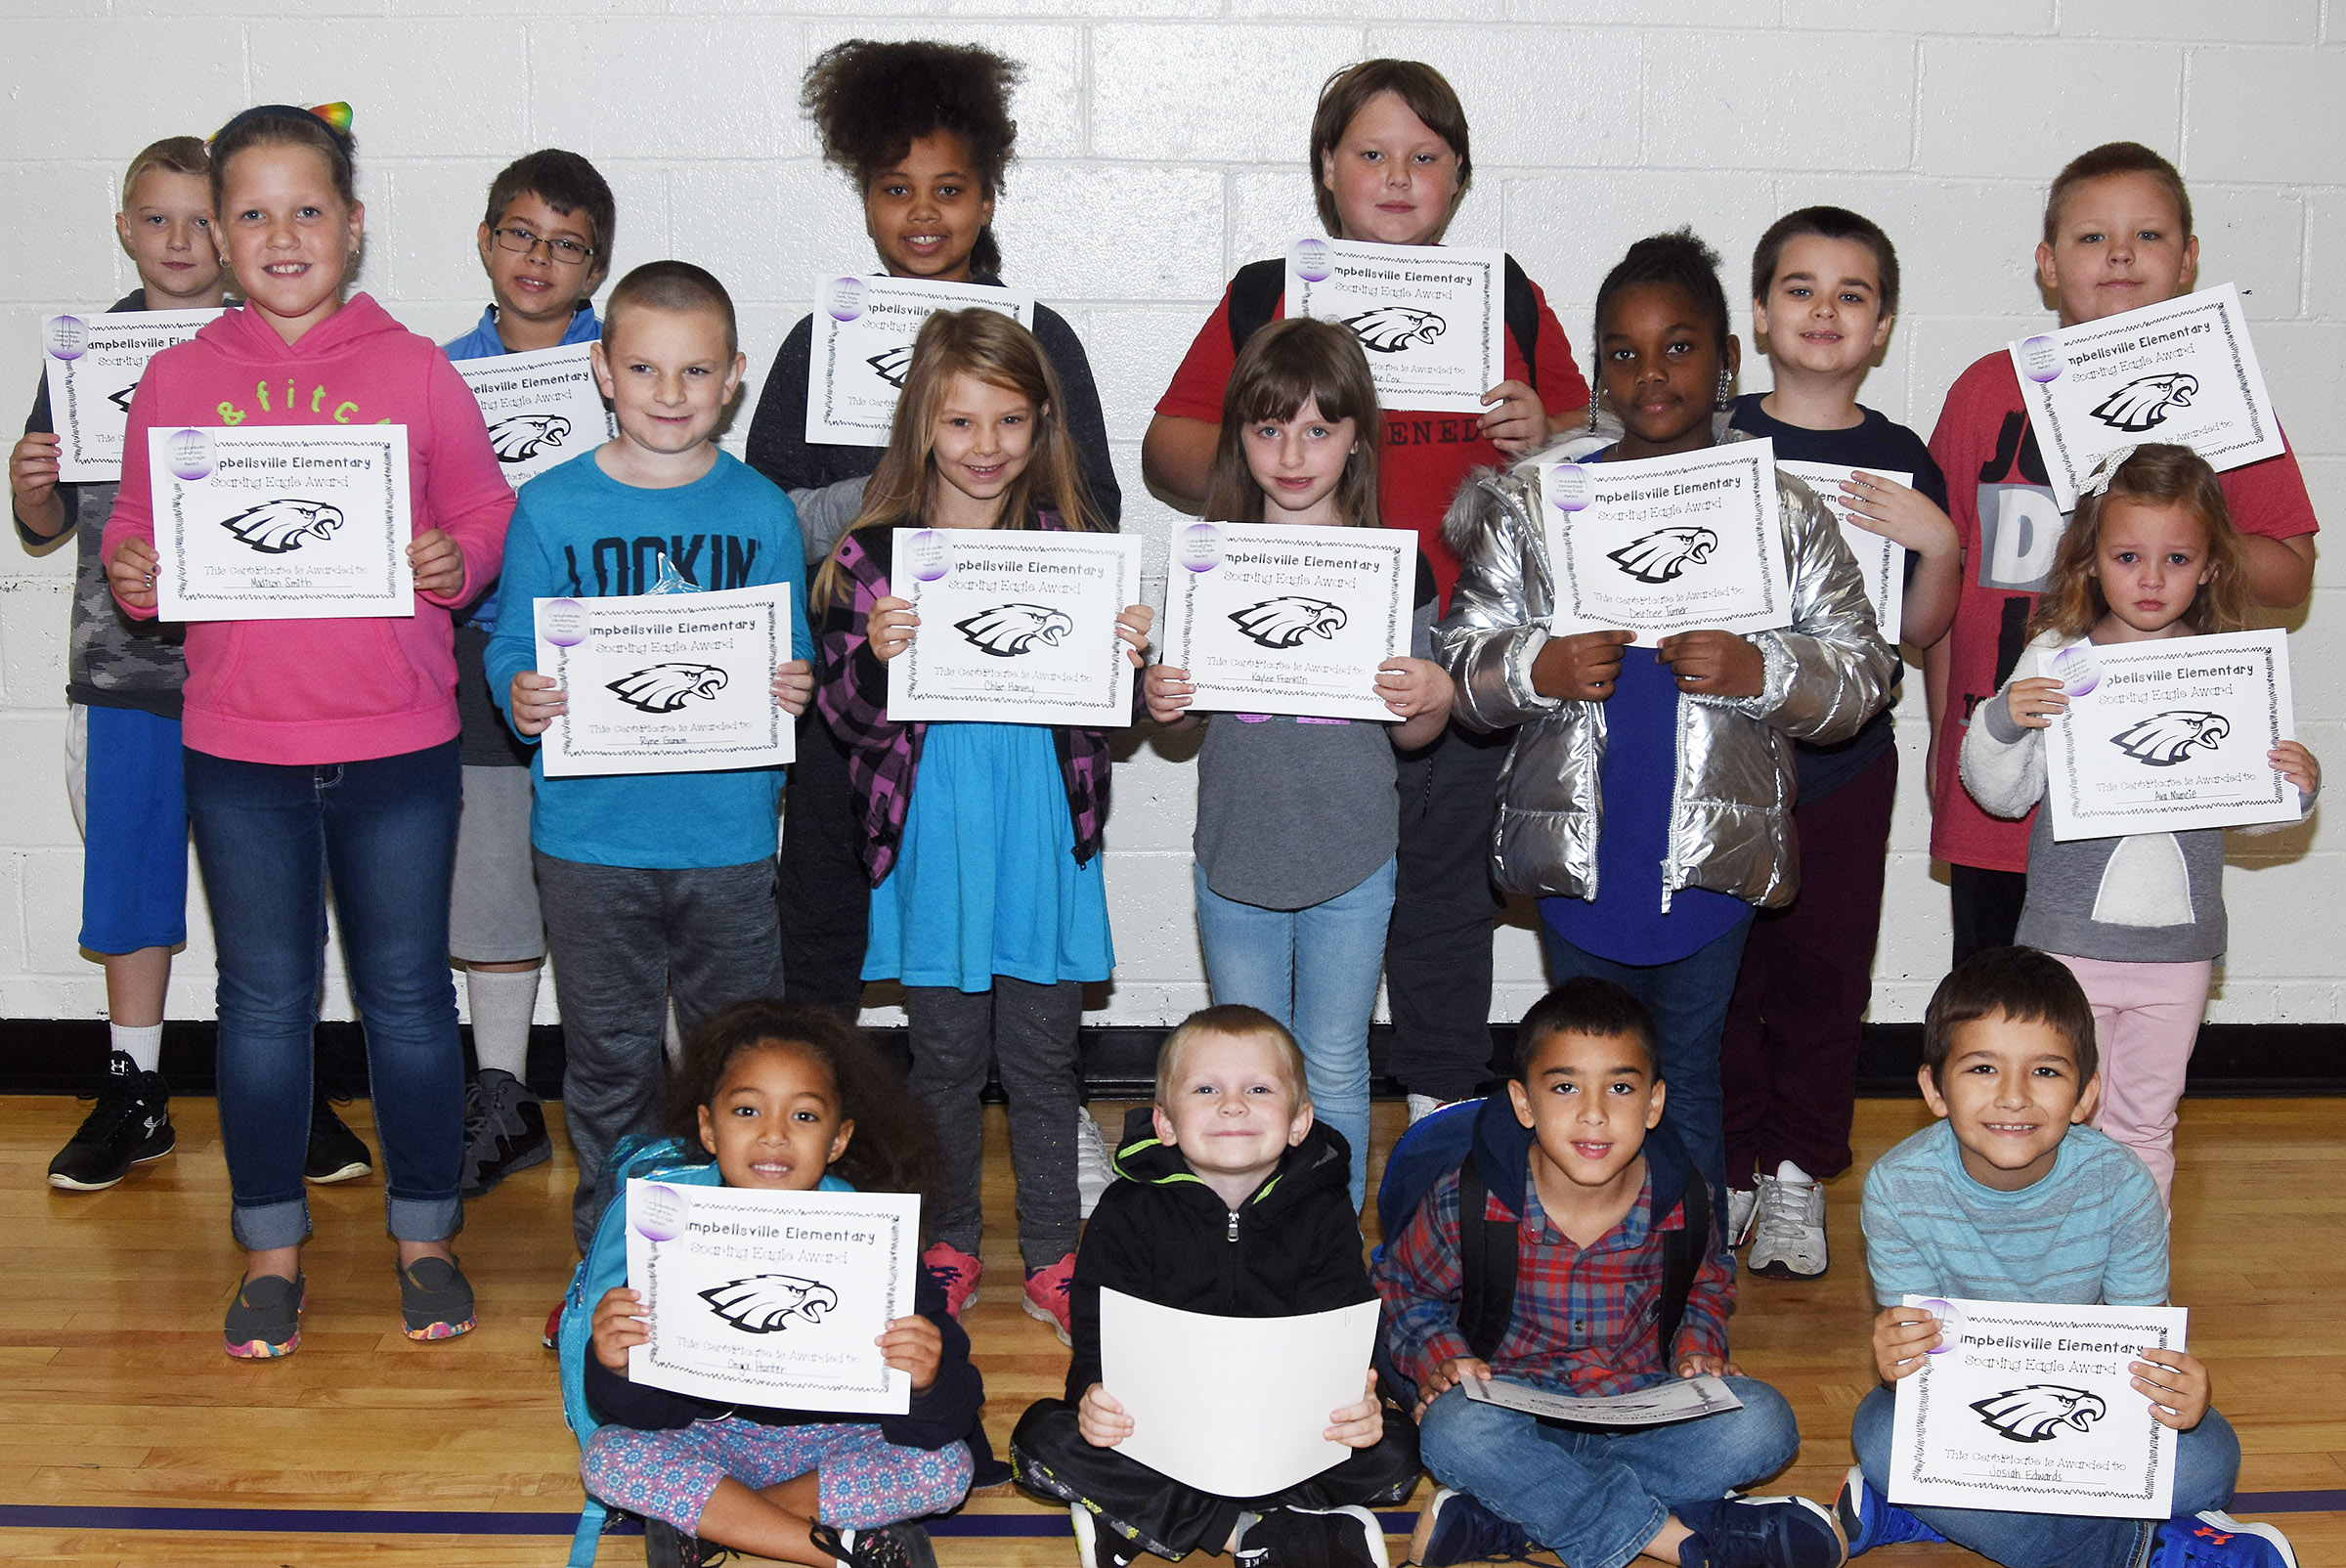 From left, front, are kindergartener Onyx Hunter, first-graders Carsen Montgomery and Cameron Carchio and second-grader Josiah Edwards. Second row, fourth-grader Madison Smith, second-grader Ryne Gumm, third-grader Chloe Harvey, first-grader Kaylee Franklin, second-grader Destinee Henry-Turner and kindergartener Ava Muncie. Back, fourth-grader Camren Skaggs, fifth-grader Stanley Napper, third-grader Journey Webb, fifth-grader Jace Cox, third-grader Sawyer Lange and fourth-grader Peyton Mitchell. Absent from the photo are kindergartener Emma Spalding and third-grader Keiava Thompson.